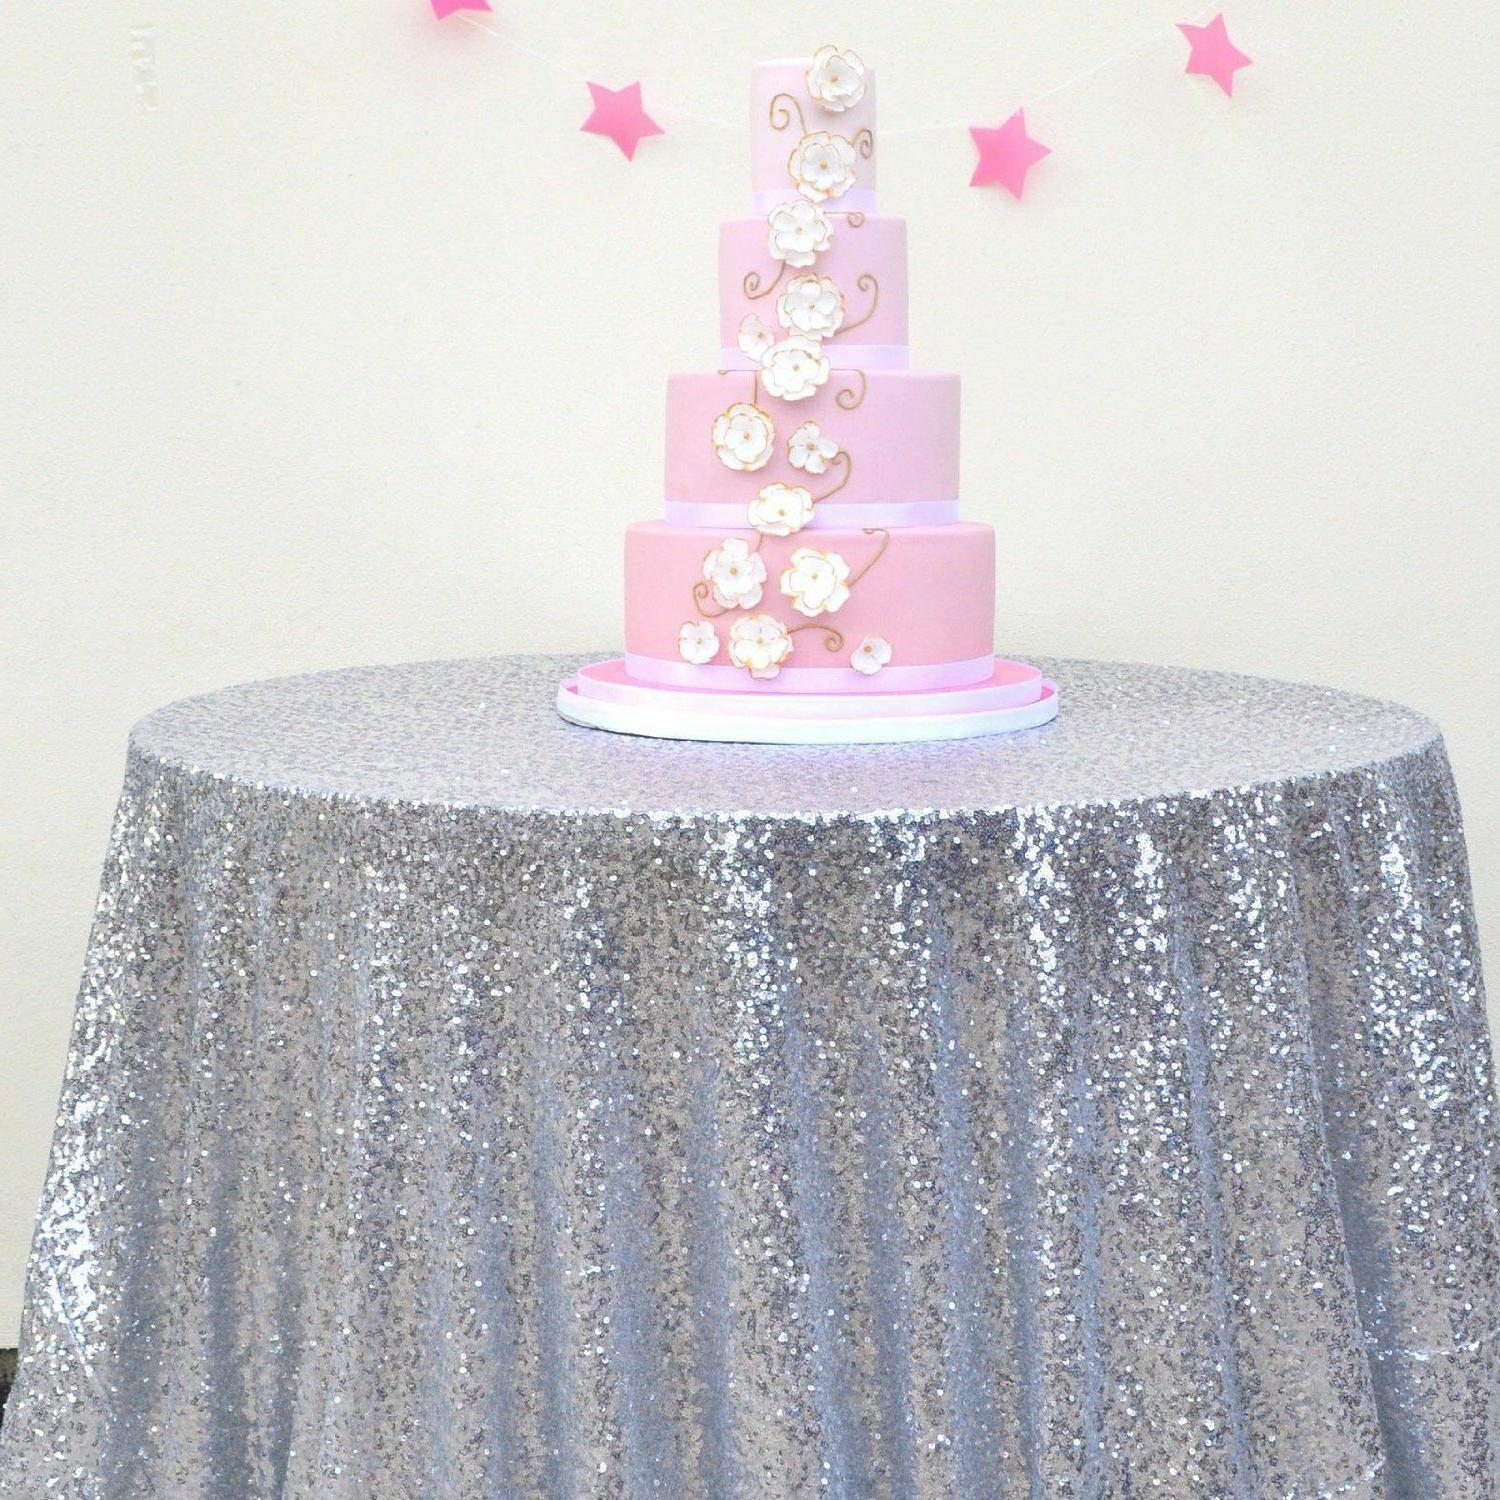 15 Colors 48'' Round Sequin Table cloth Cover For Wedding/Ev